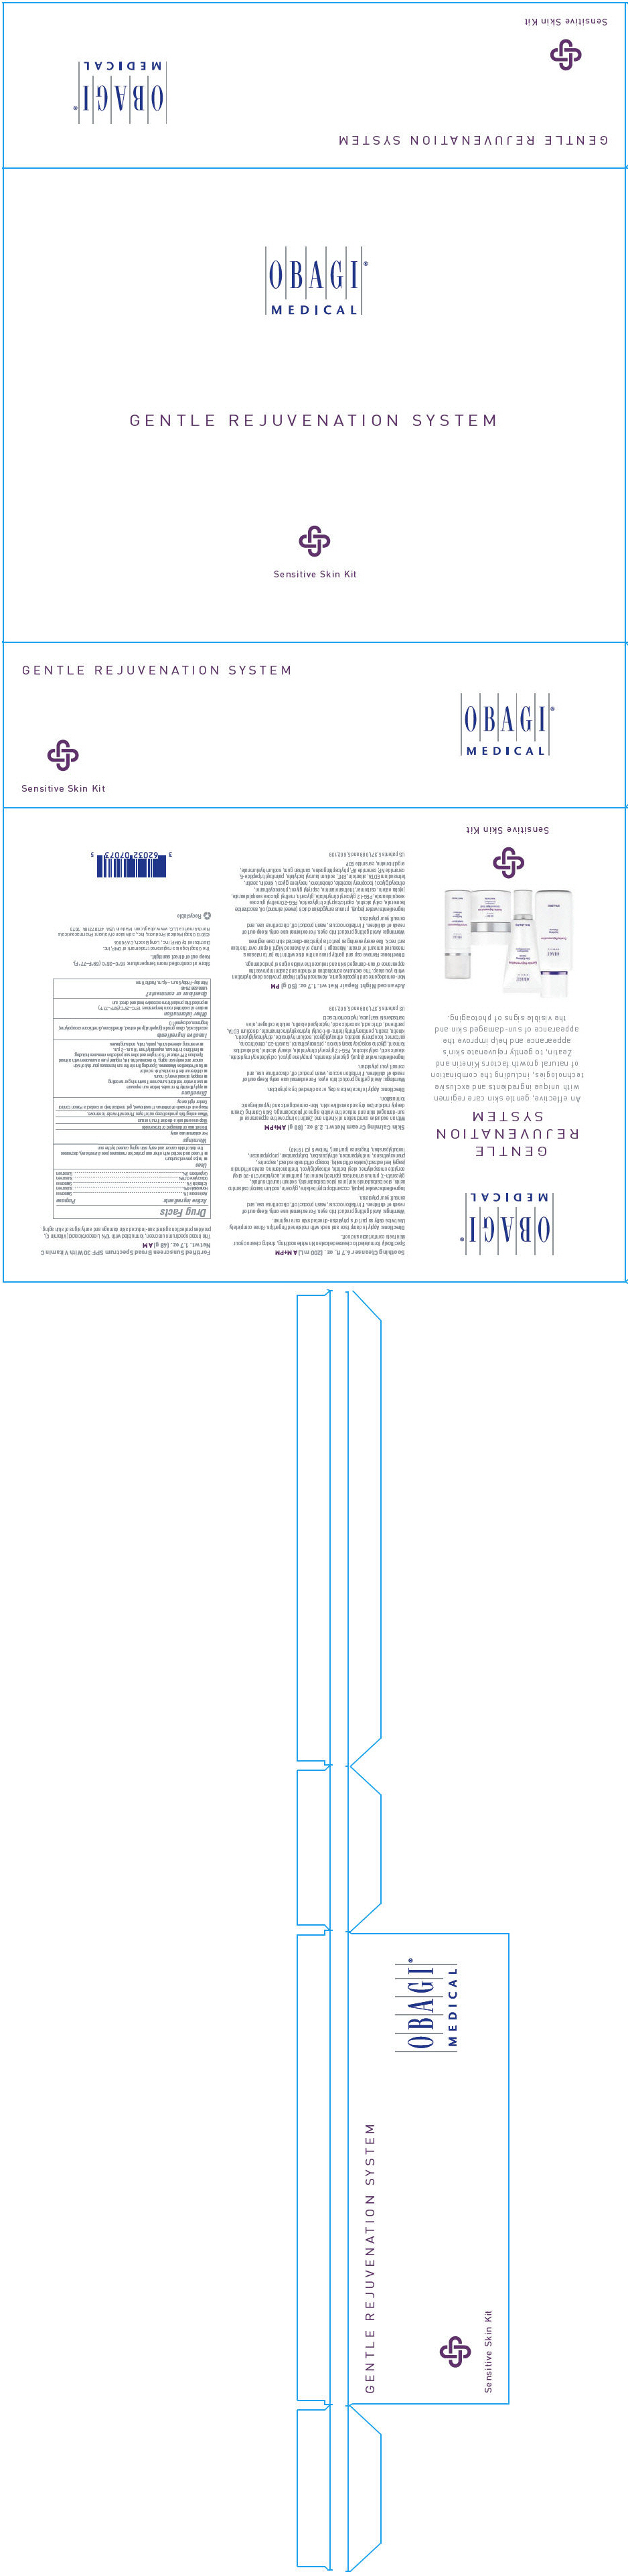 Gentle Rejuvenation System (Avobenzone, Homosalate, Octisalate, Octocrylene, And Oxybenzone) Kit [Obagi Medical Products, Inc., A Division Of Valeant Pharmaceutcals North America Llc.]